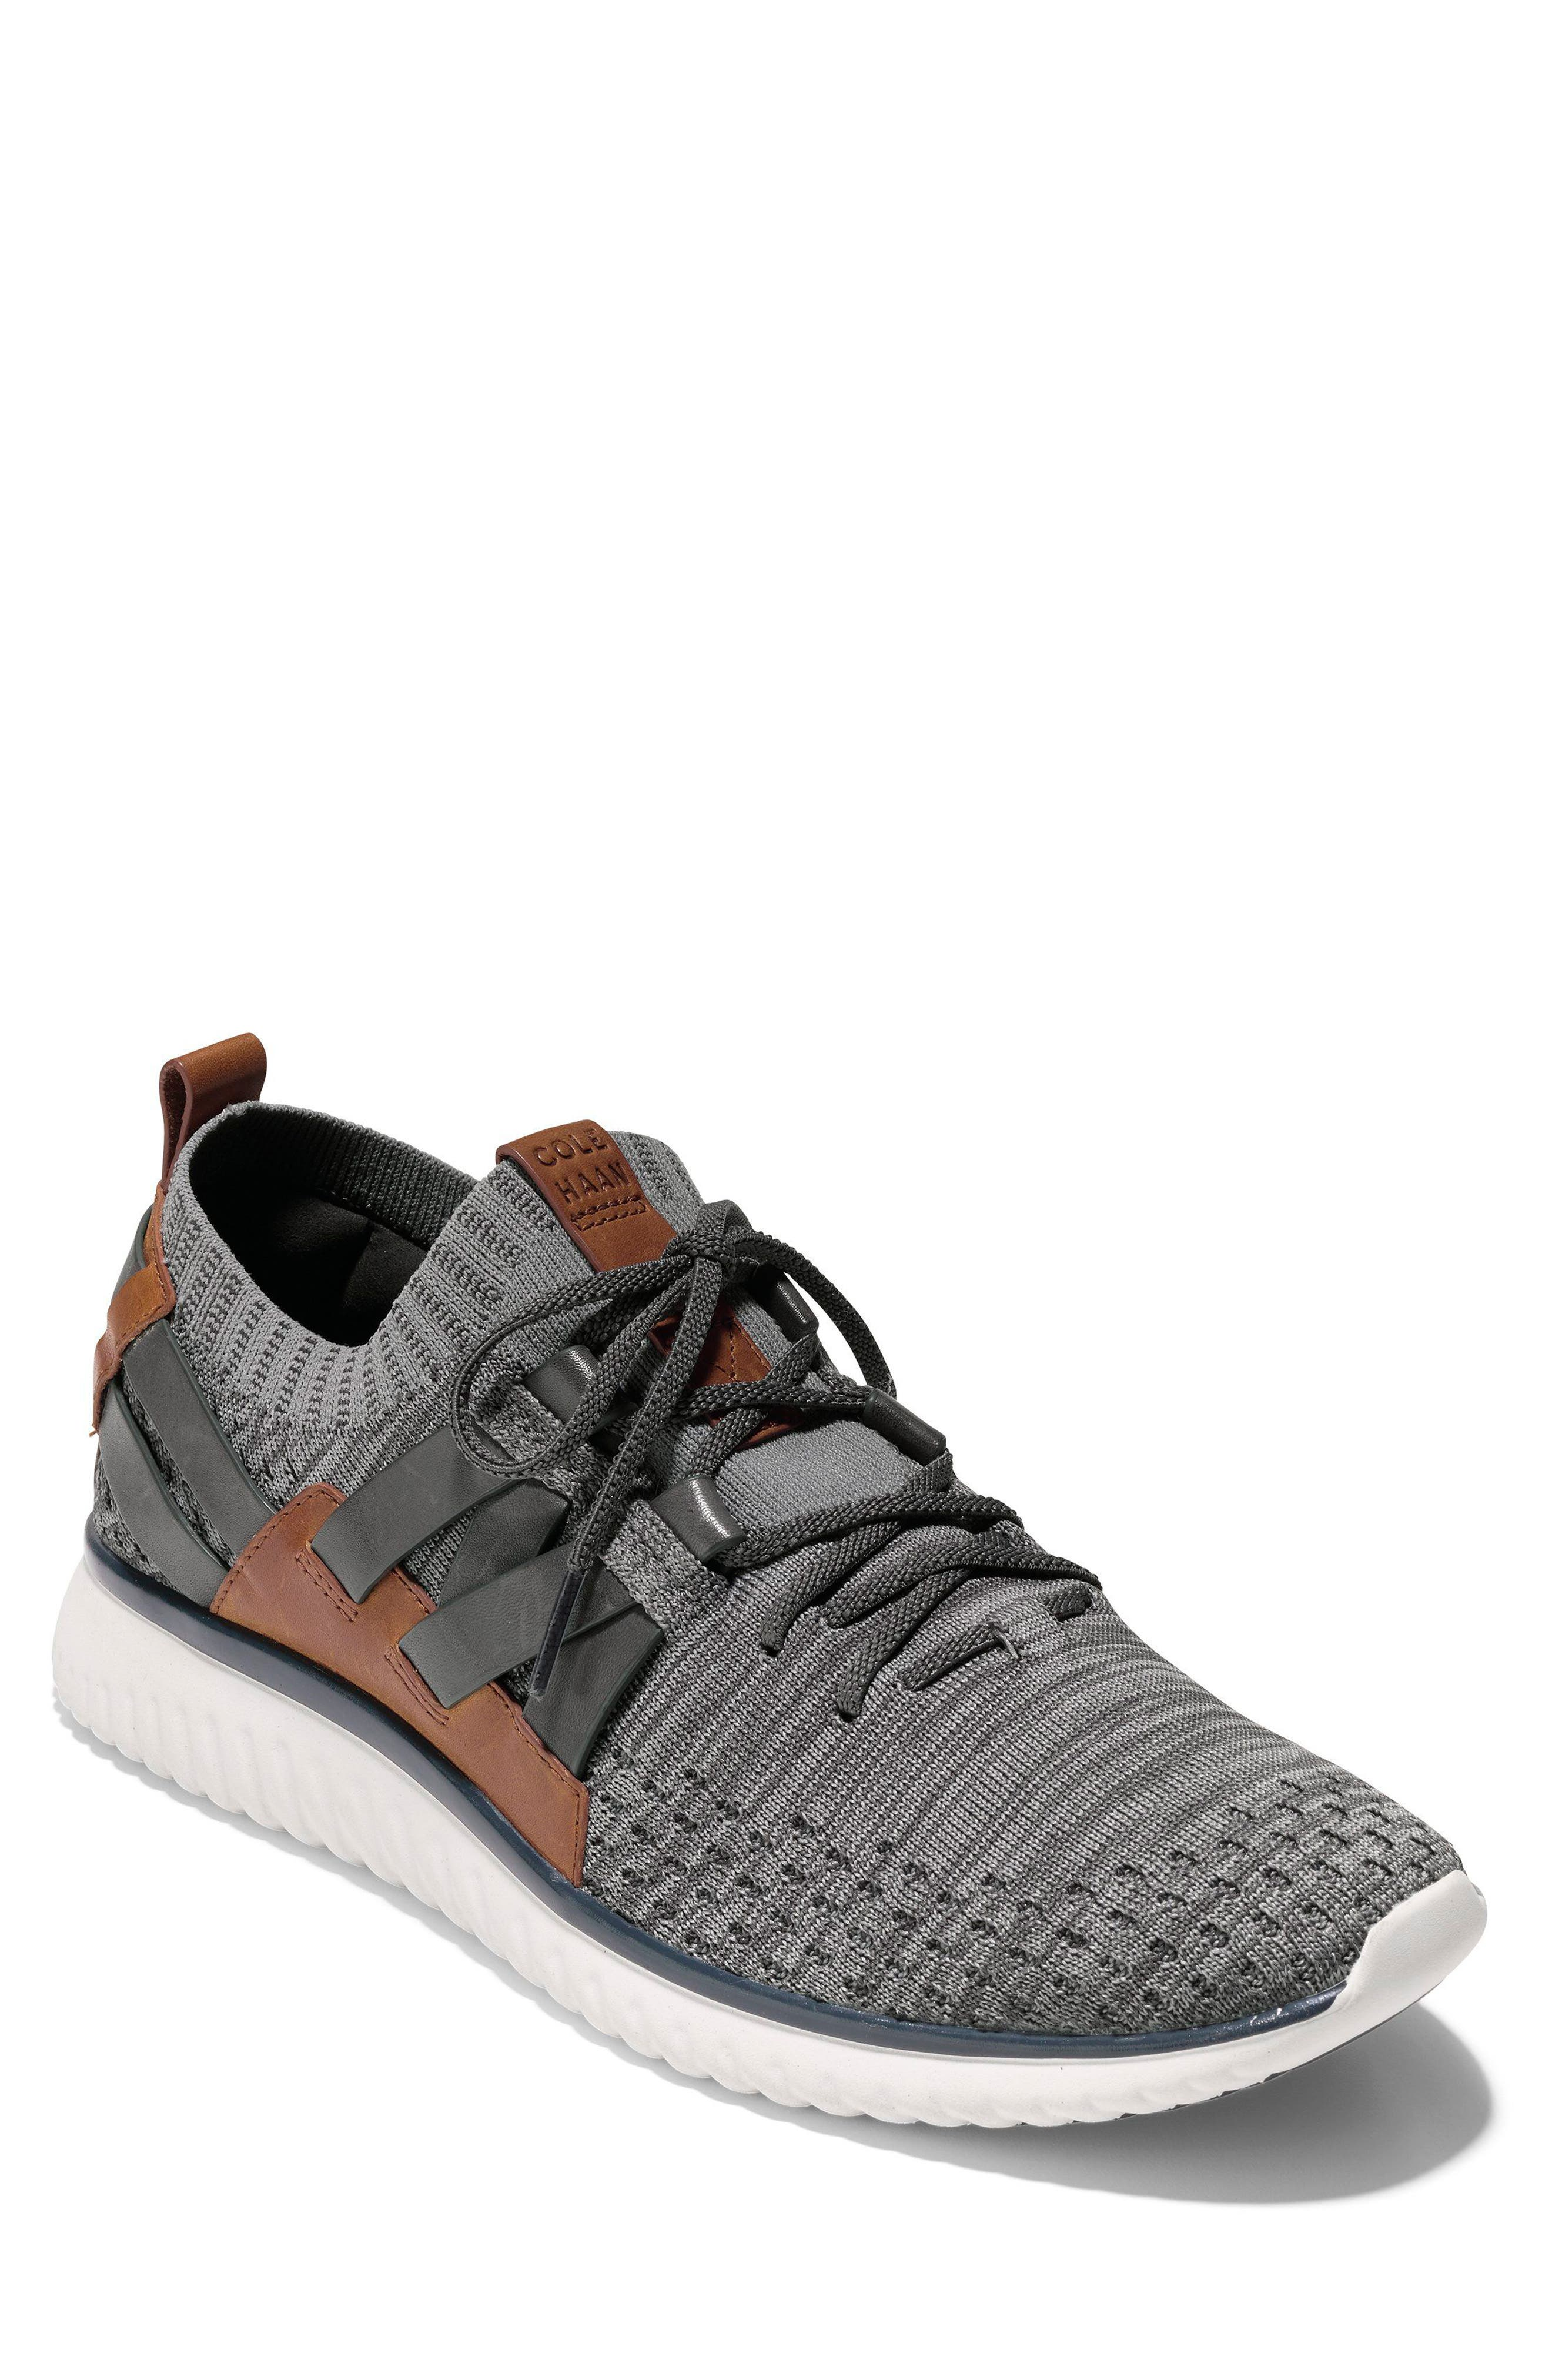 COLE HAAN Grand Motion Sneaker, Main, color, 020